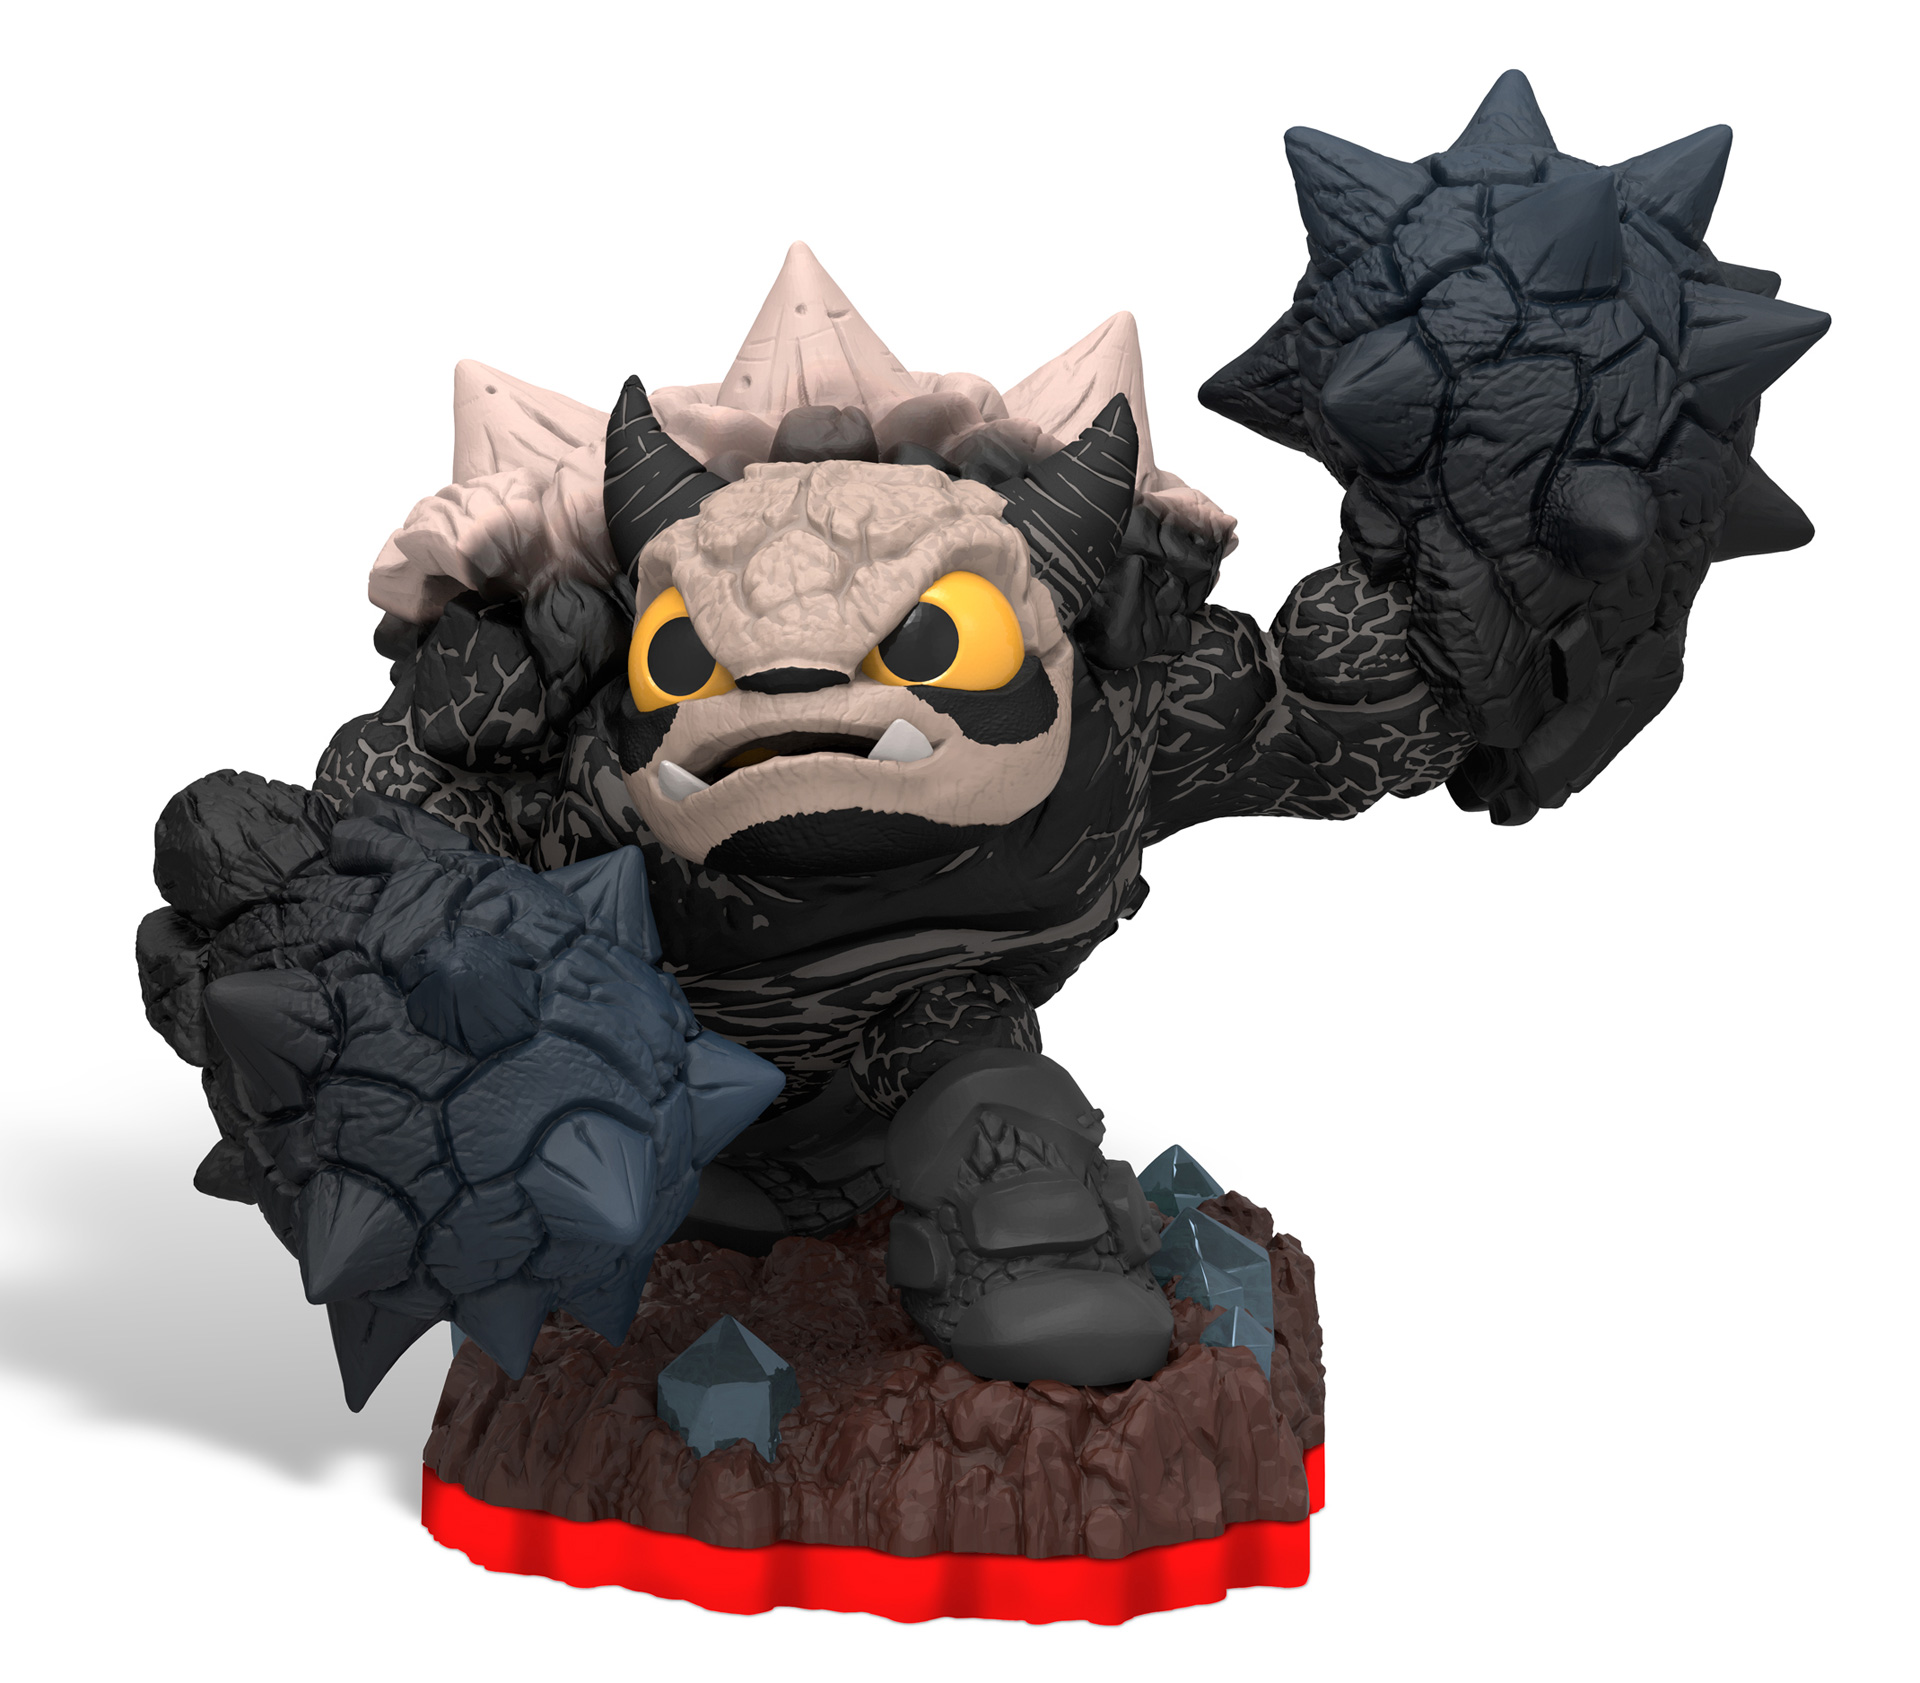 New Skylanders Trap Team Characters And Villains: Lob-Star ...